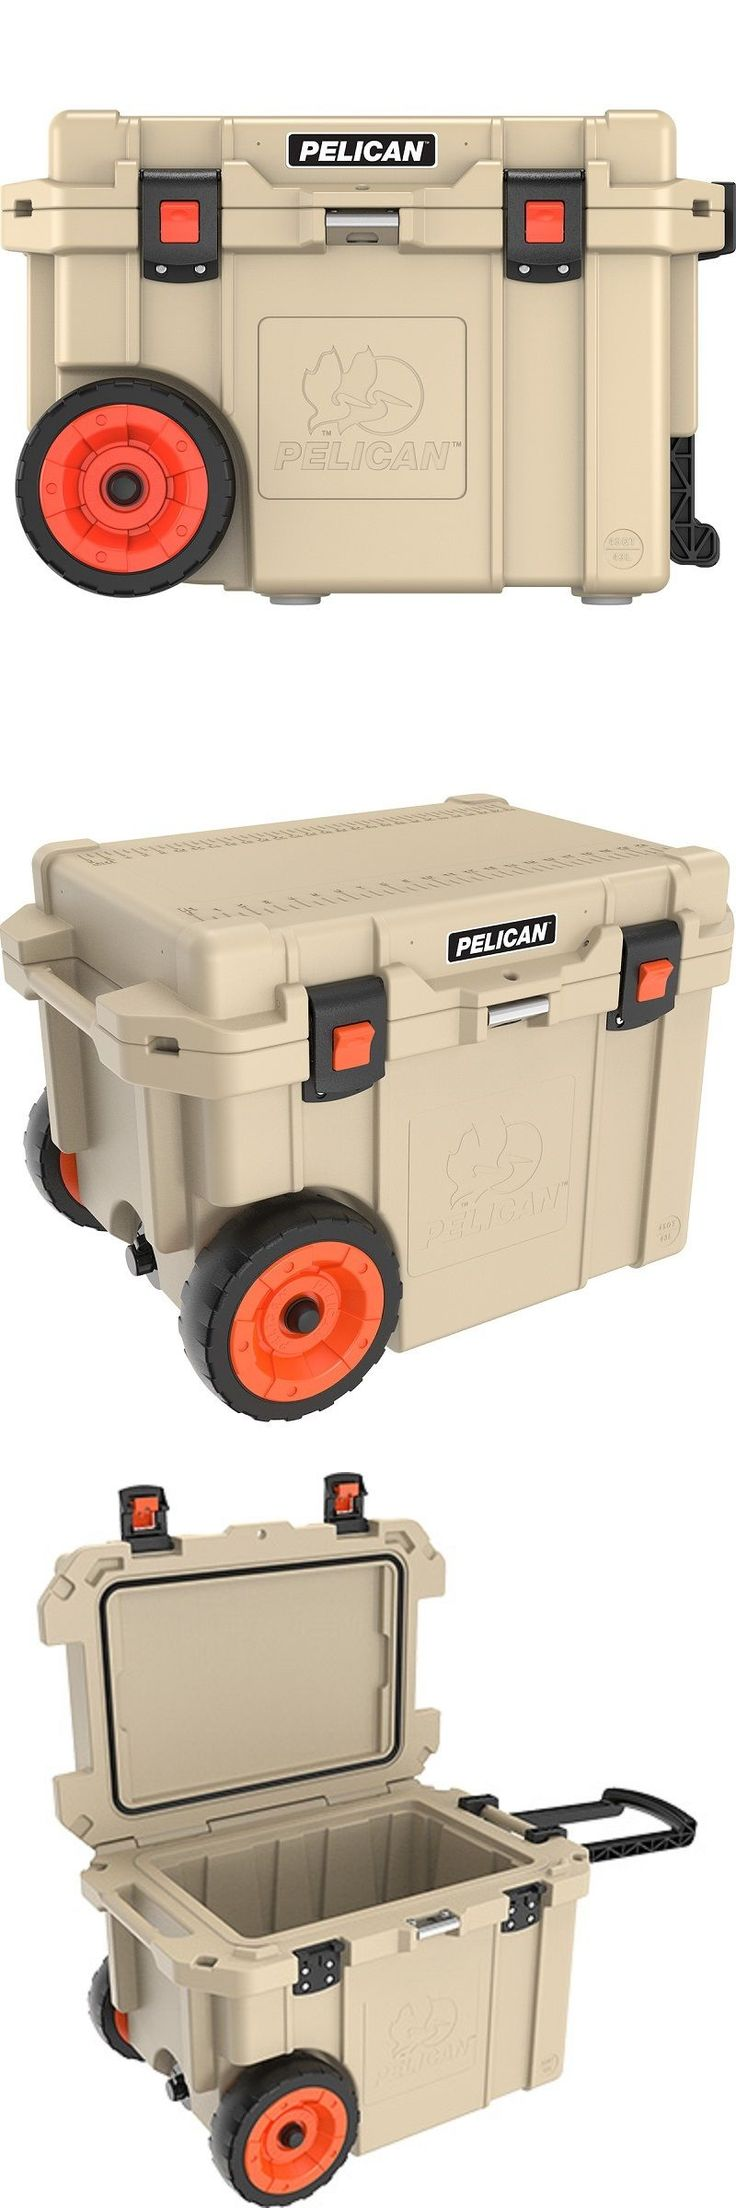 Camping Ice Boxes and Coolers 181382: Pelican 45Qw-2-Tan 45 Qw Wheeled Elite Cooler Tan -> BUY IT NOW ONLY: $339.99 on eBay!